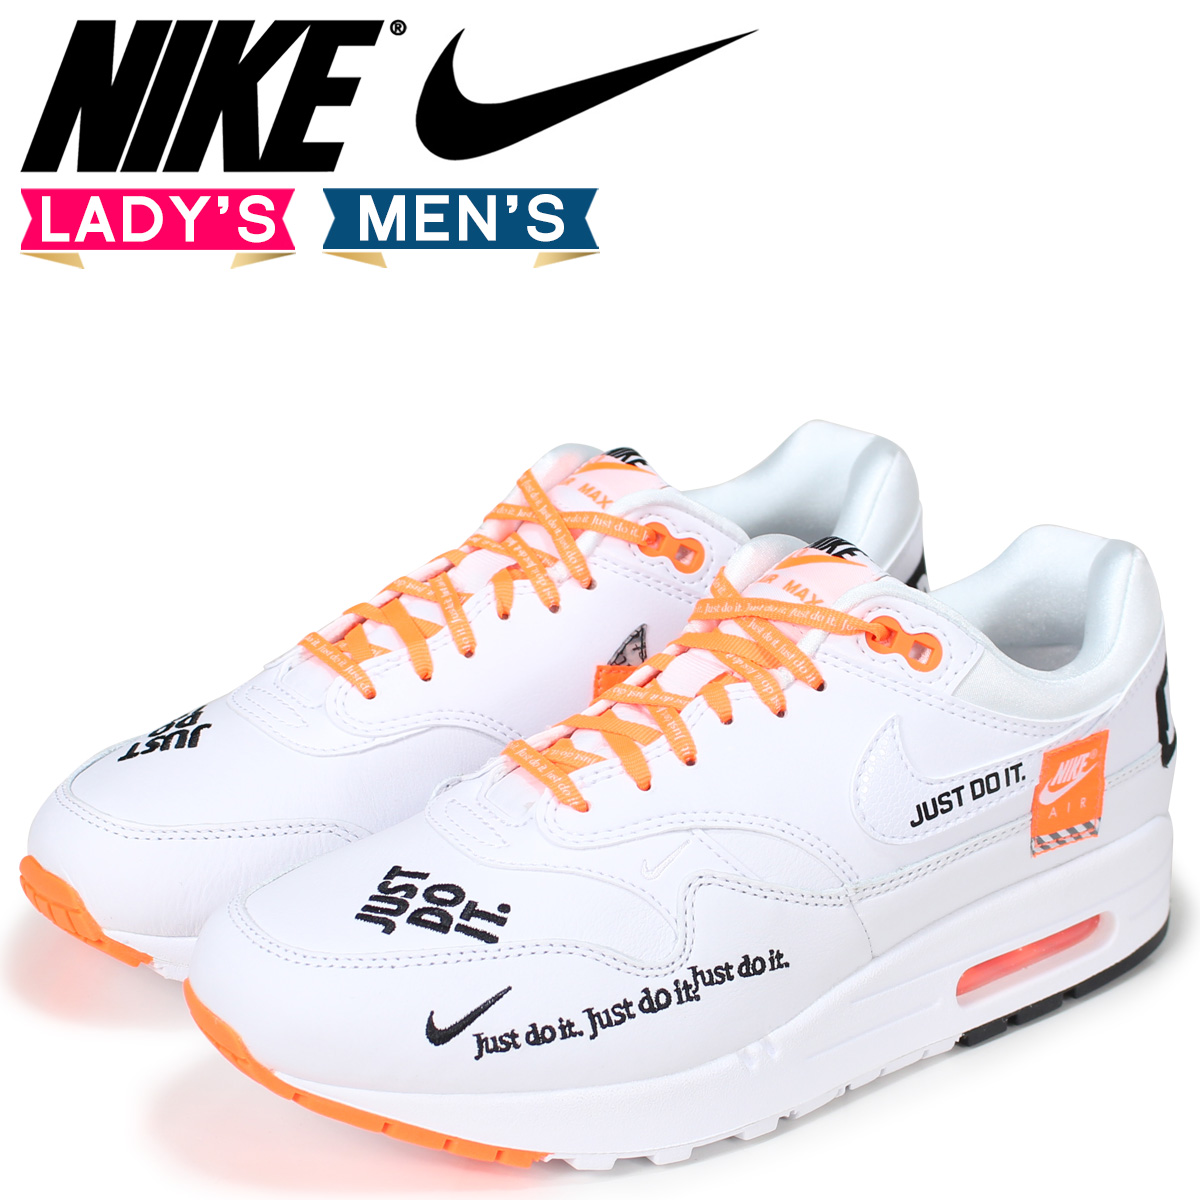 NIKE Kie Ney AMAX 1 lady's men's sneakers WMNS AIR MAX 1 LX 917,691 100 white white